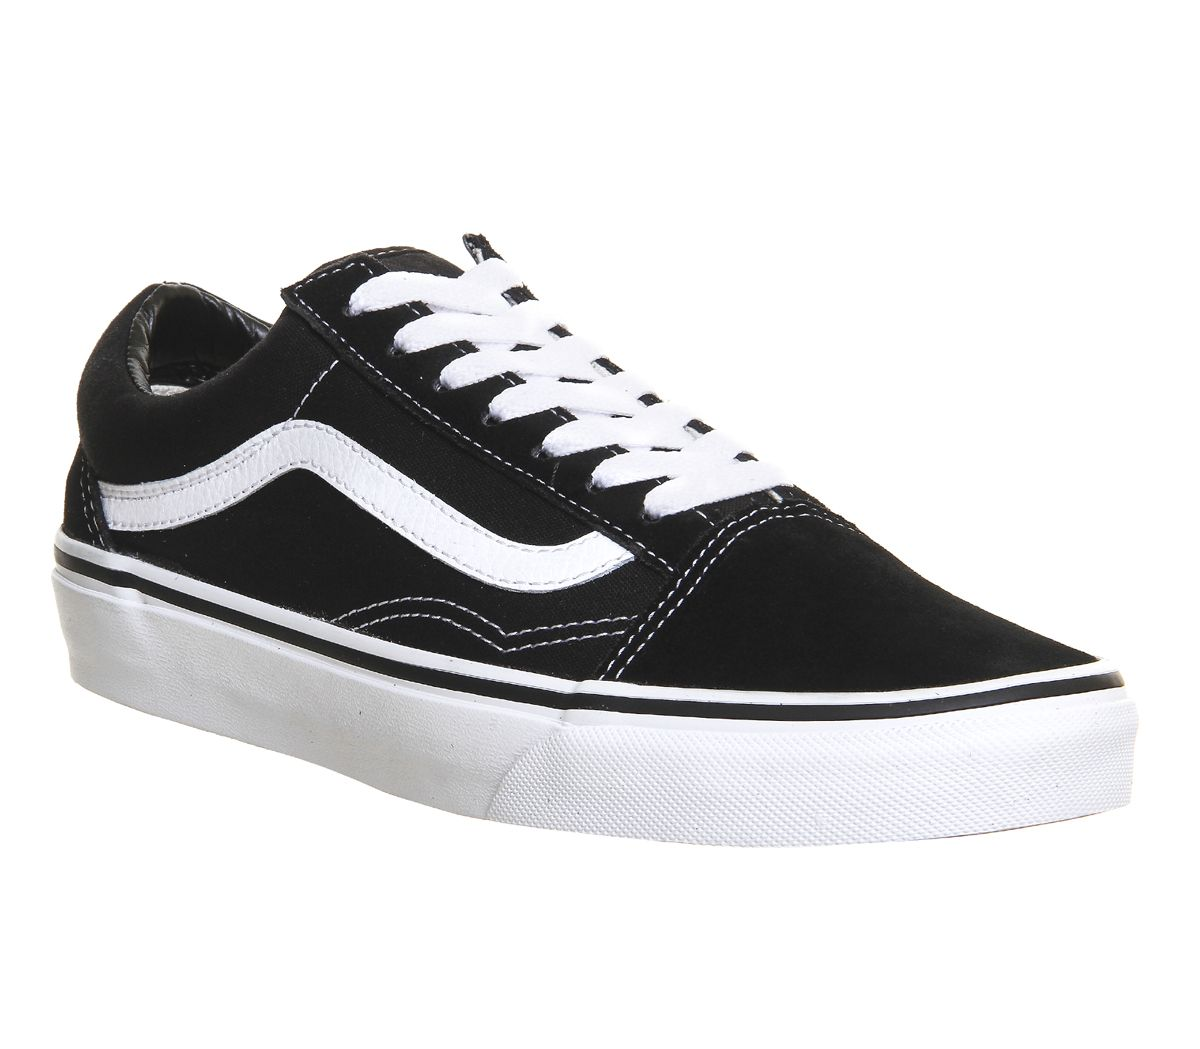 5c1690fdf6 Vans Old Skool Trainers Black - Unisex Sports